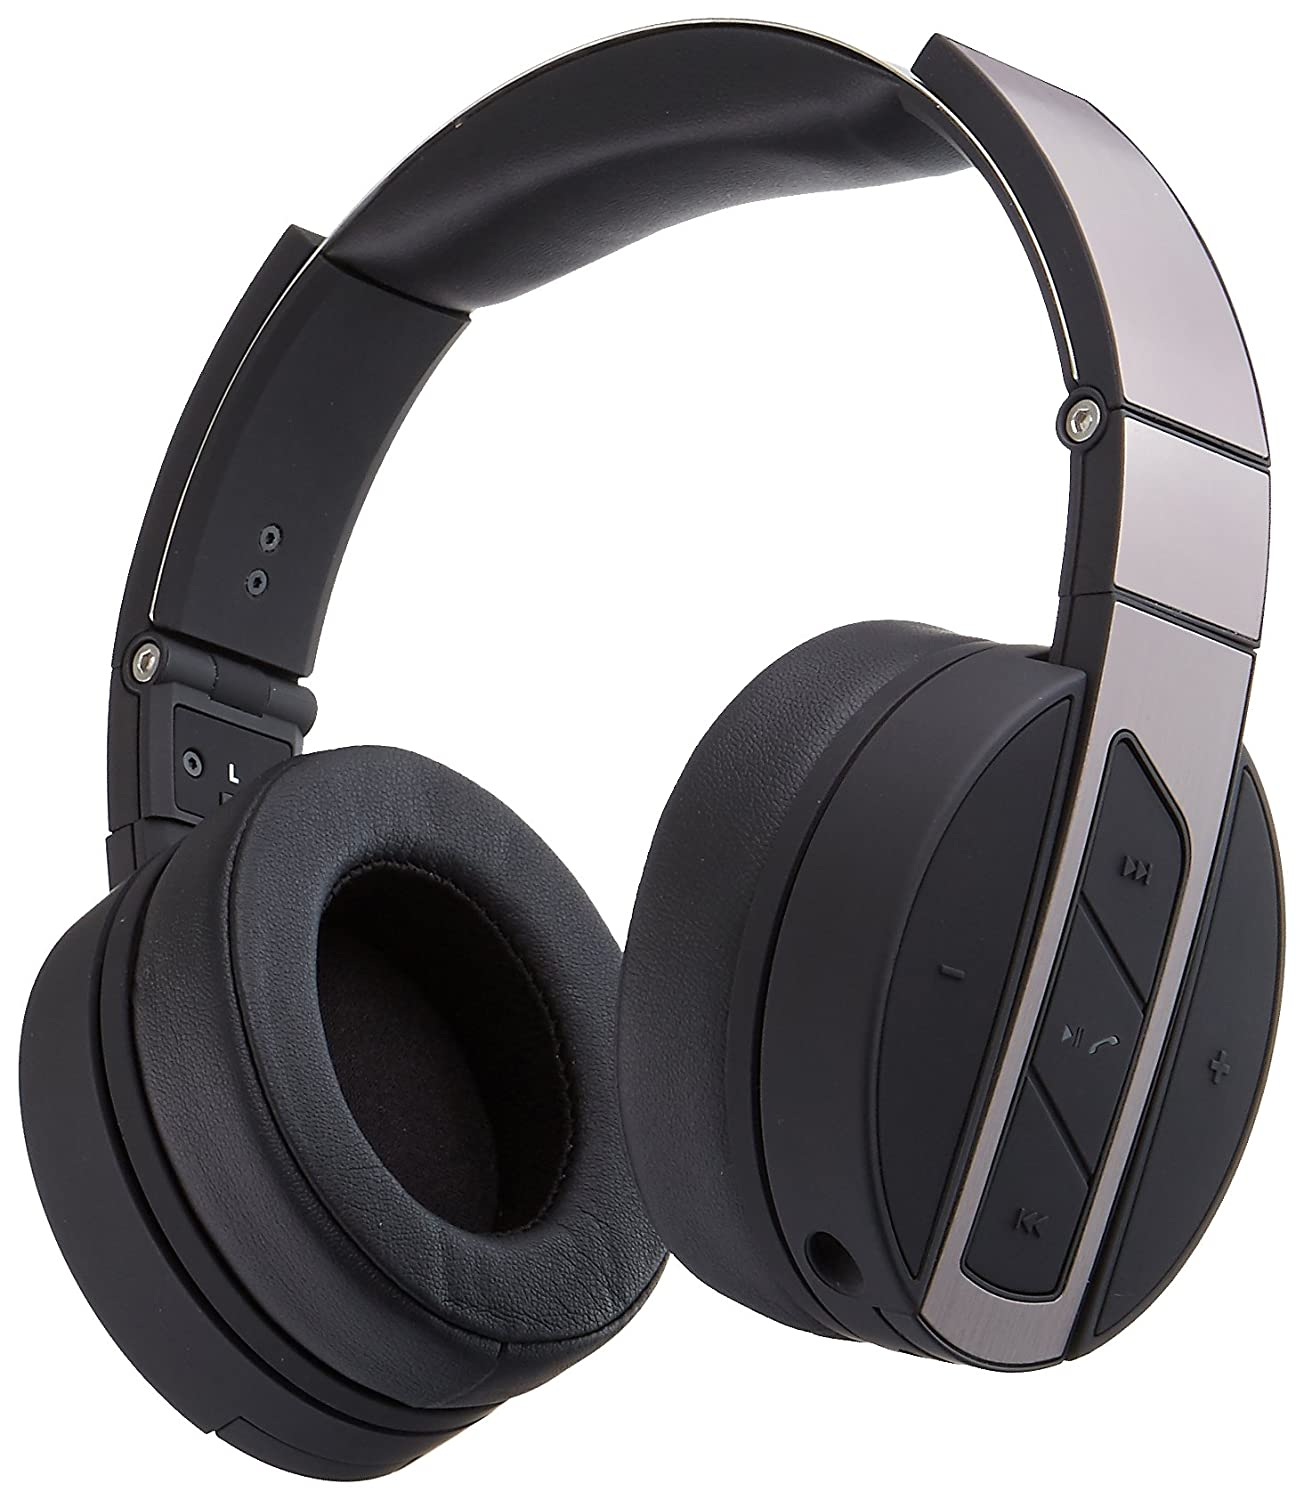 Monoprice Bluetooth Over-Ear auriculares con micrófono integrado - negro/Metal pulido: Amazon.es: Electrónica